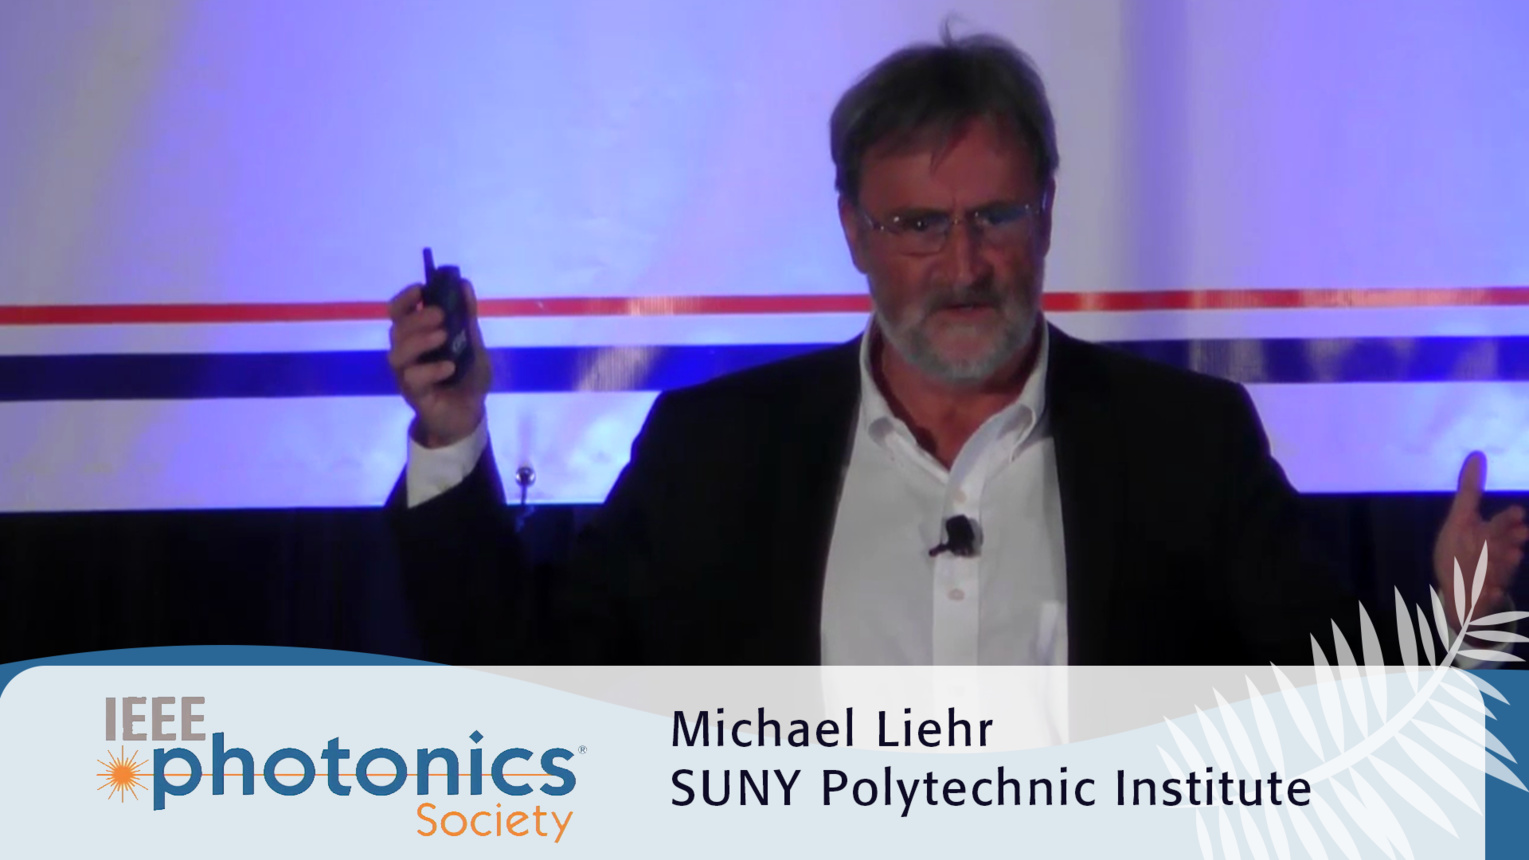 Integrated Photonics Manufacturing Initiative - Michael Liehr Plenary from the 2016 IEEE Photonics Conference